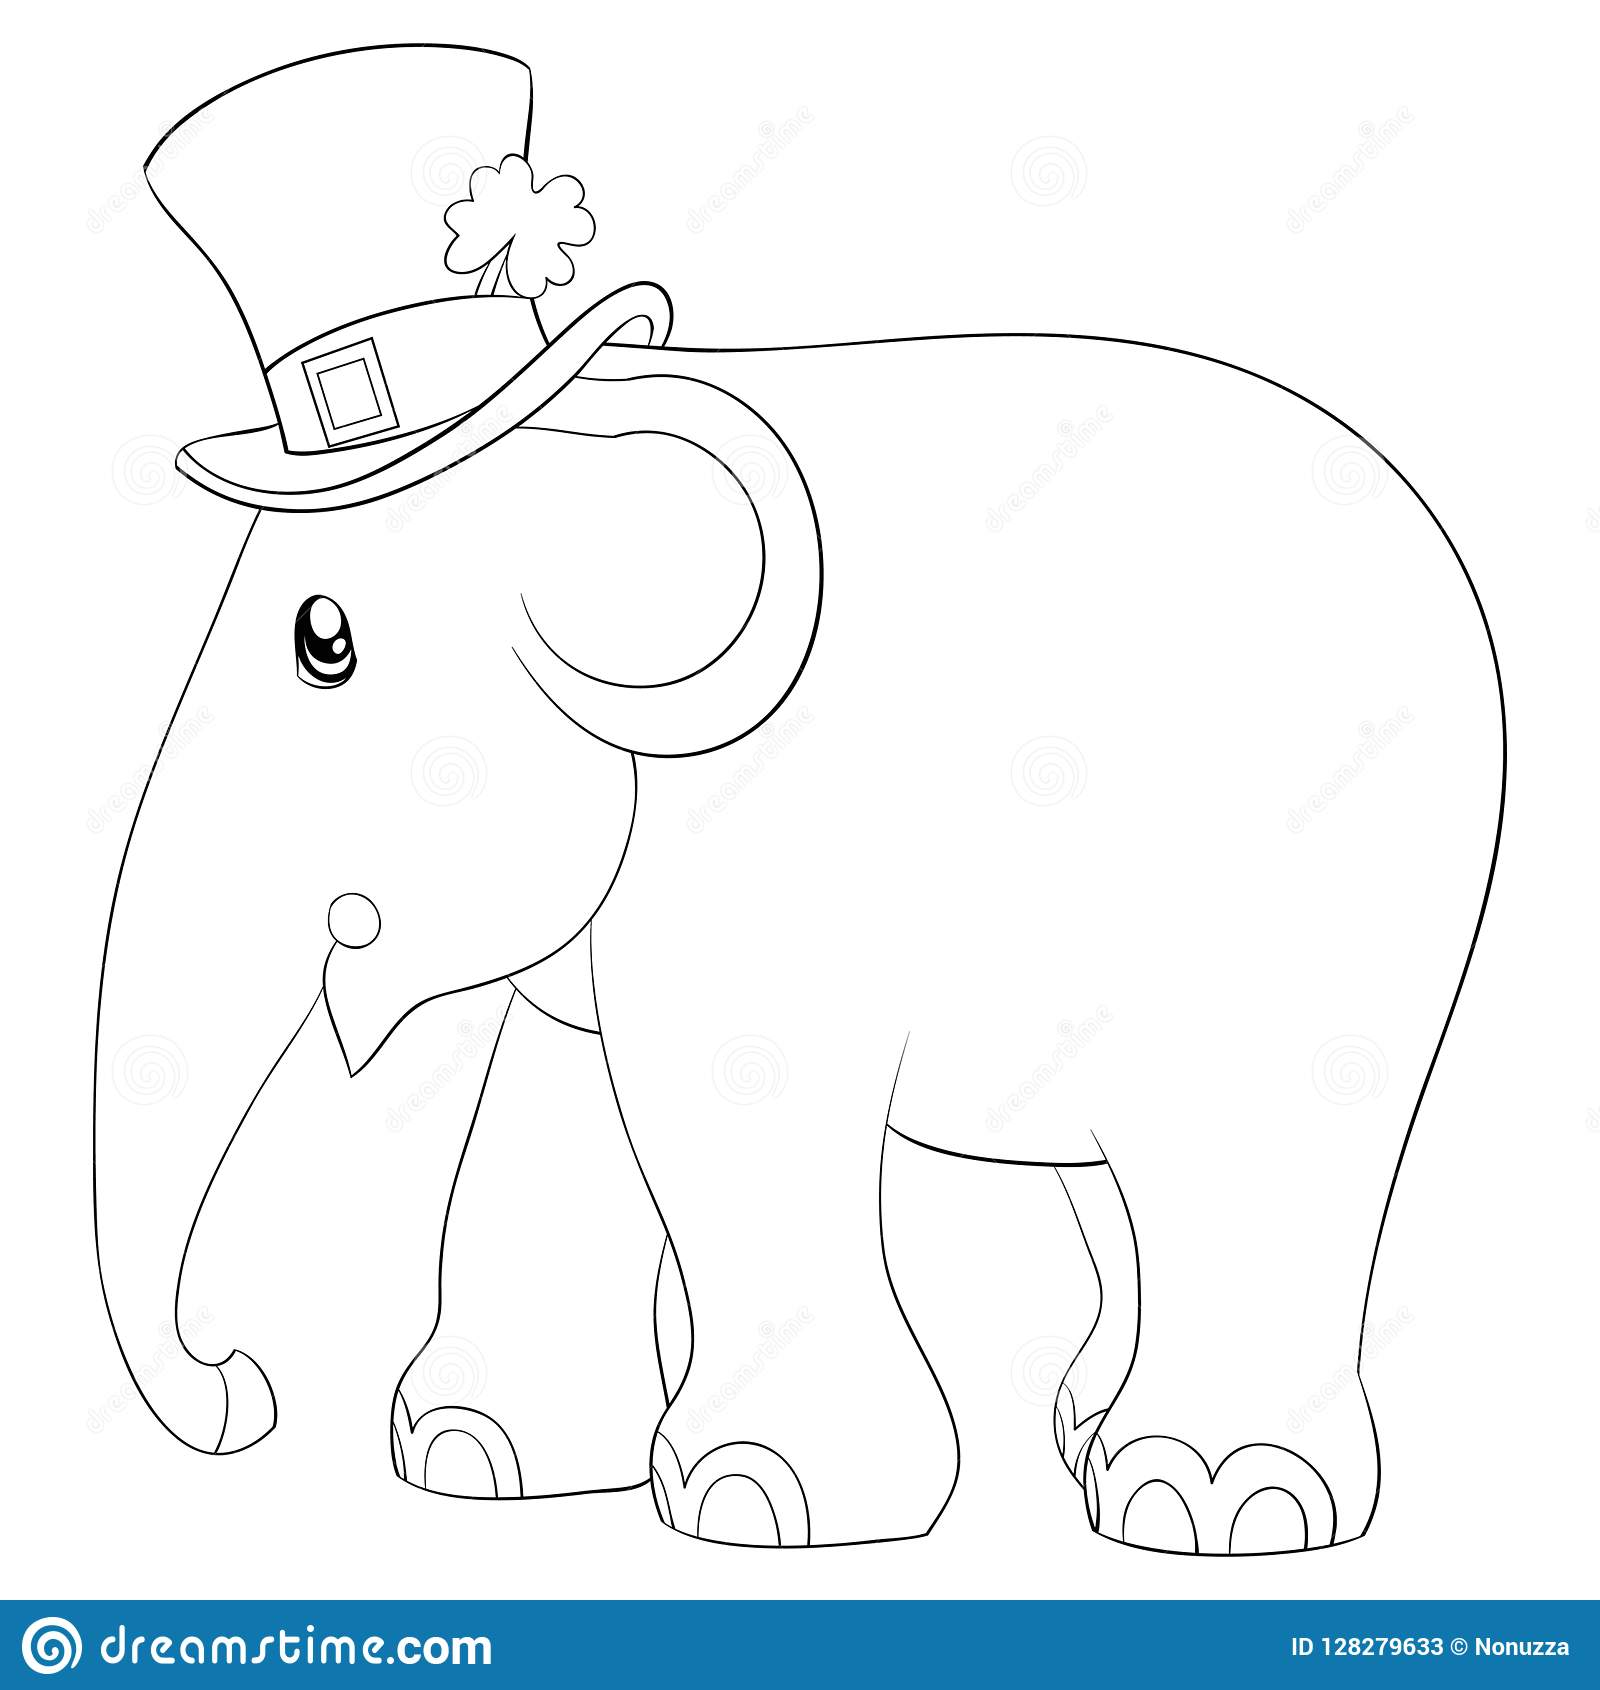 Coloring Page Book A Cute Elephant Image For Children Line Art